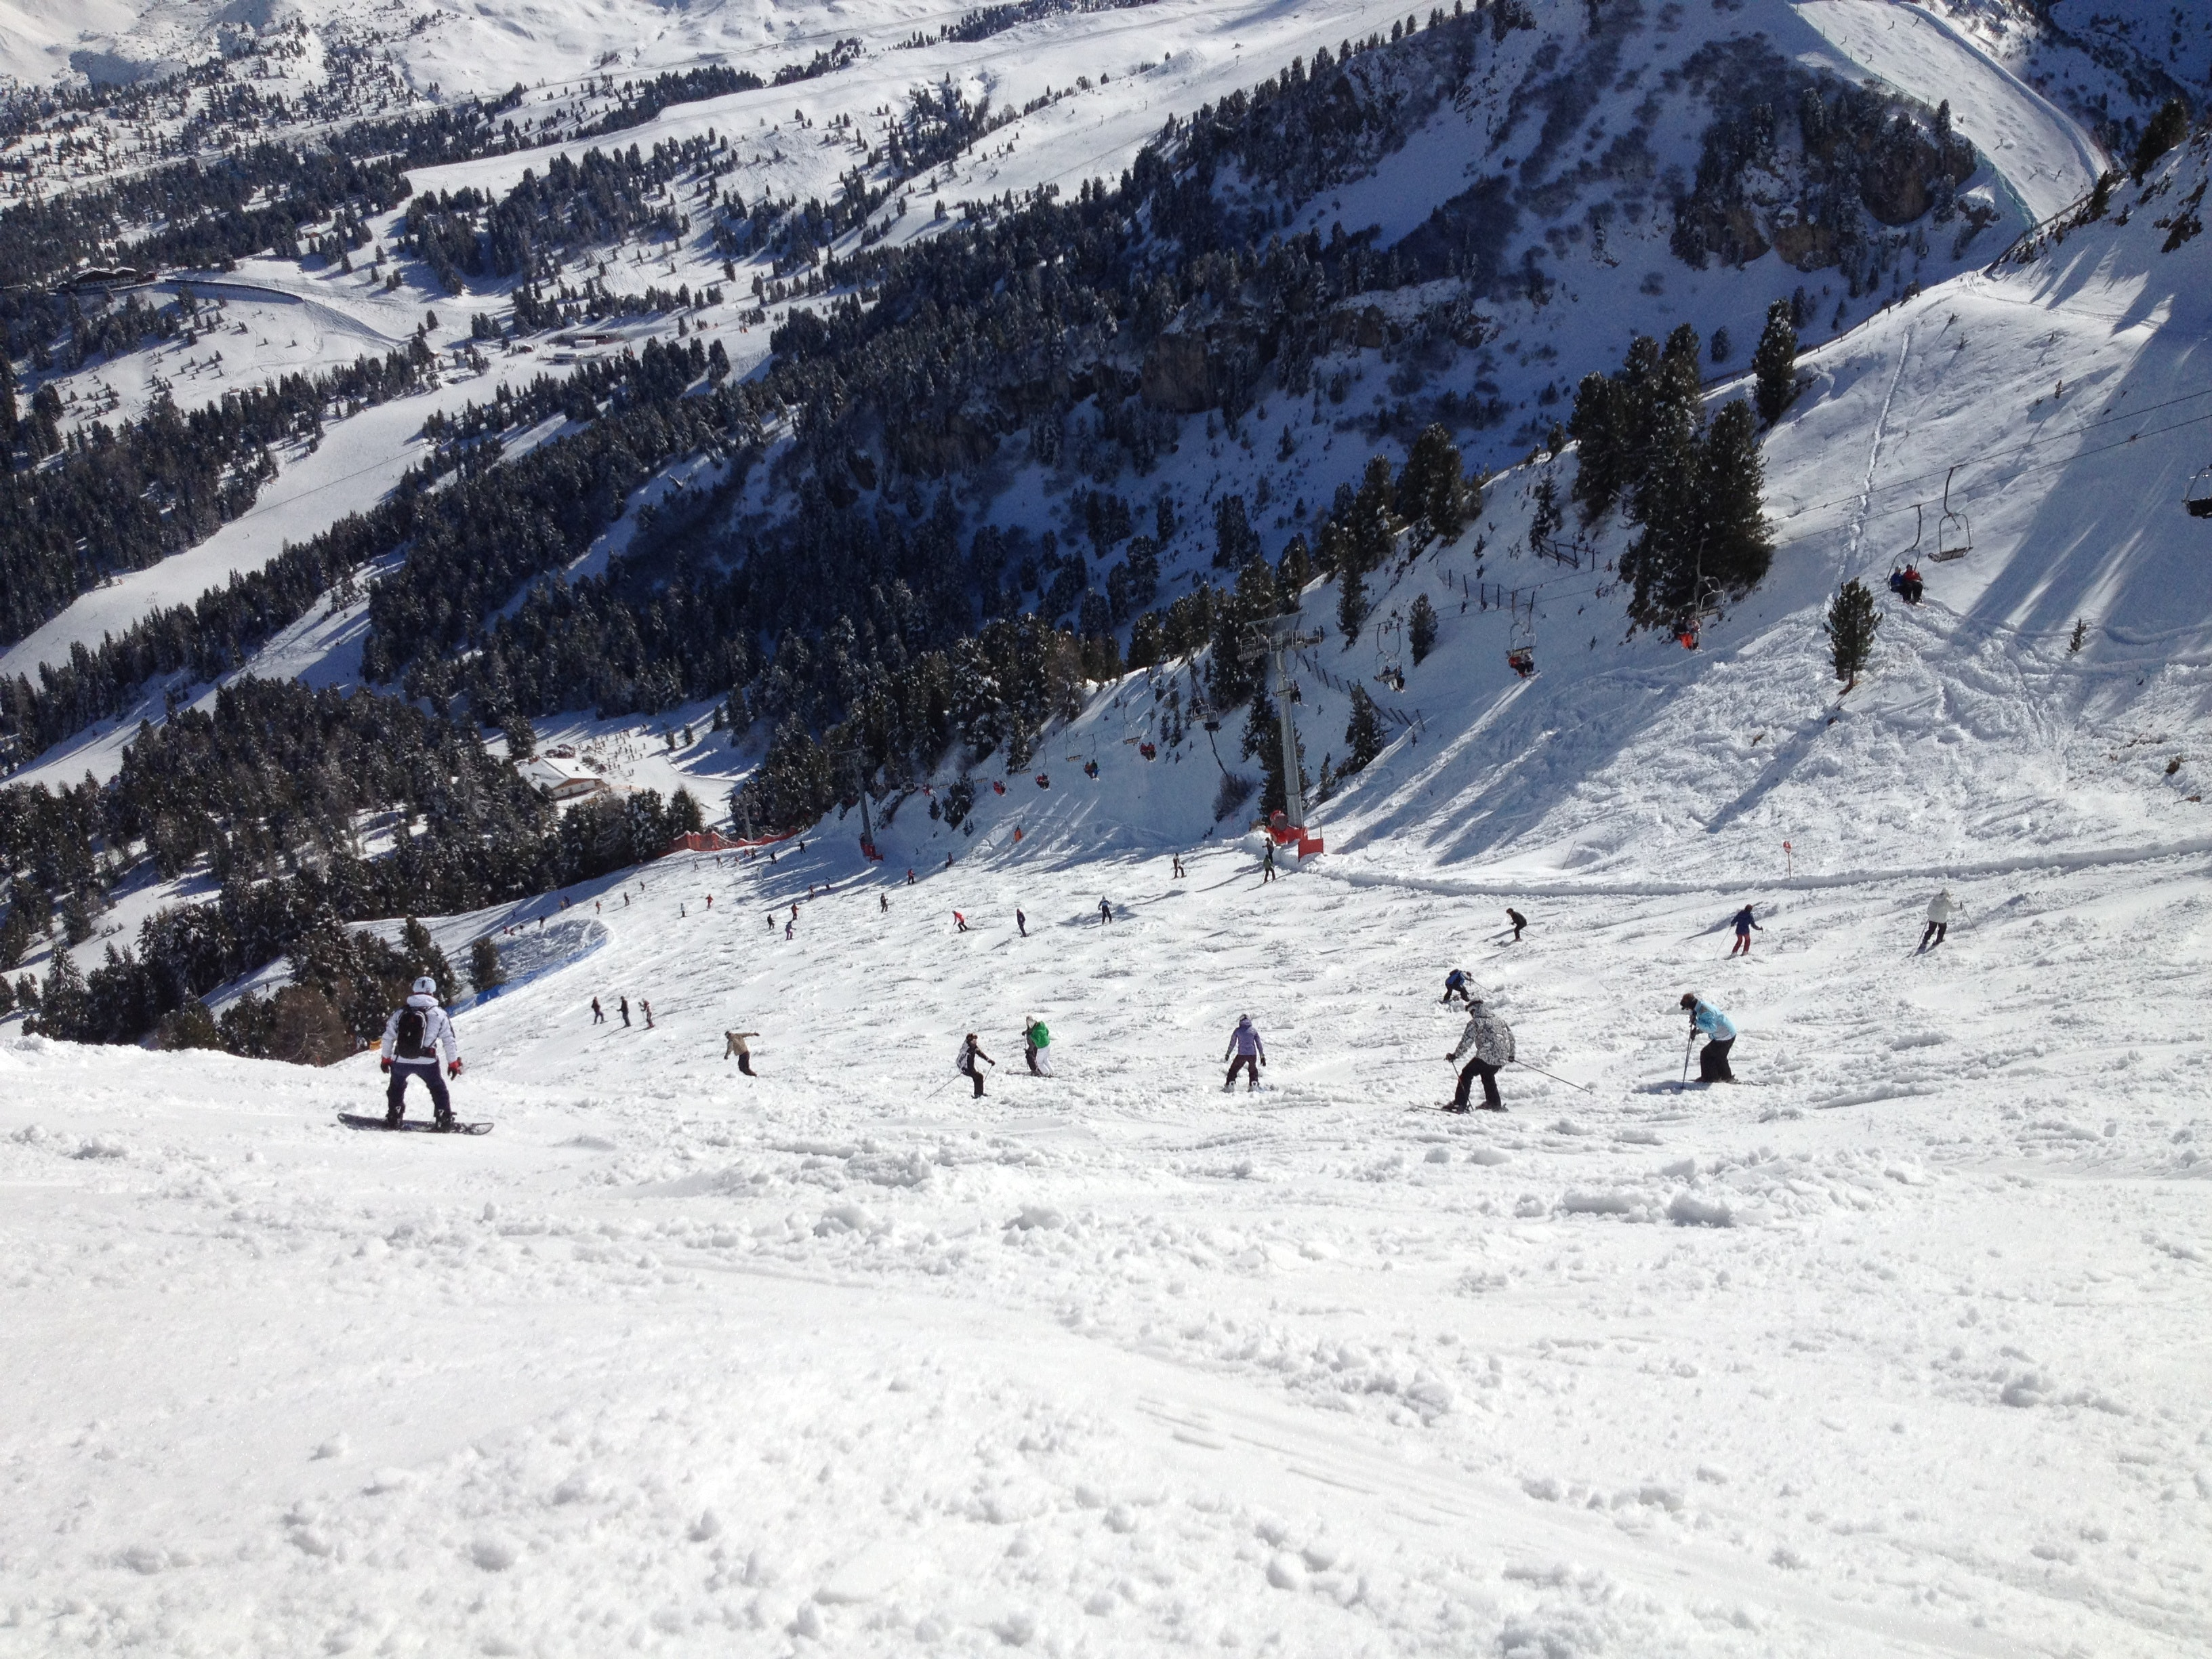 Person Riding on Snowboard on the Snow during Daytime, Activity, Cold, Mountain, People, HQ Photo